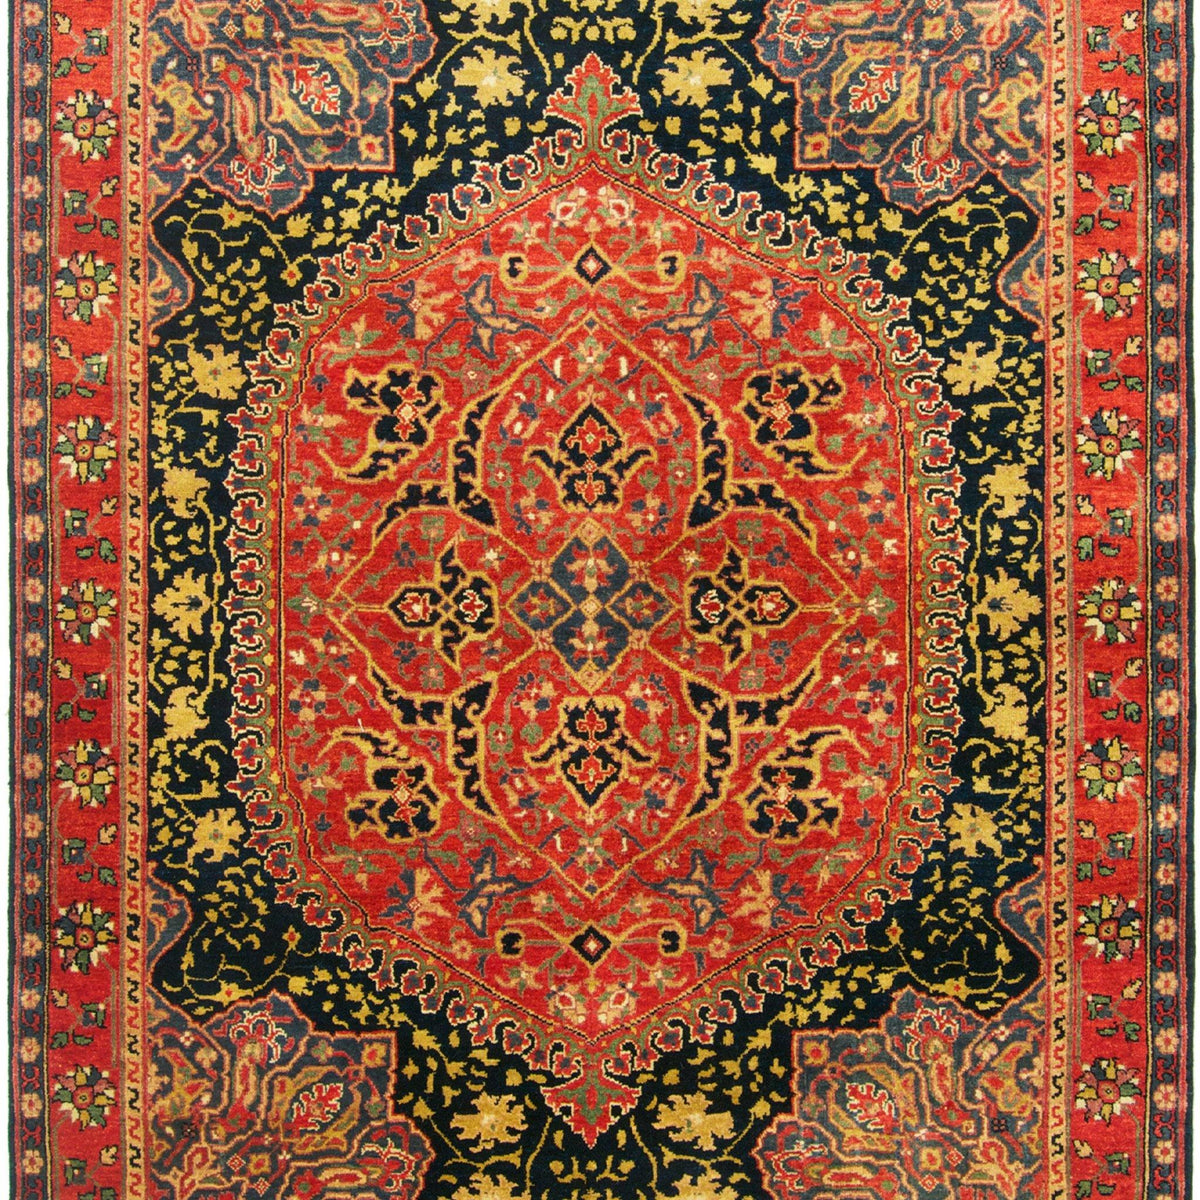 Fine Hand-knotted Wool Persian Farahan Design Rug 154cm x 213cm Persian-Rug | House-of-Haghi | NewMarket | Auckland | NZ | Handmade Persian Rugs | Hand Knotted Persian Rugs